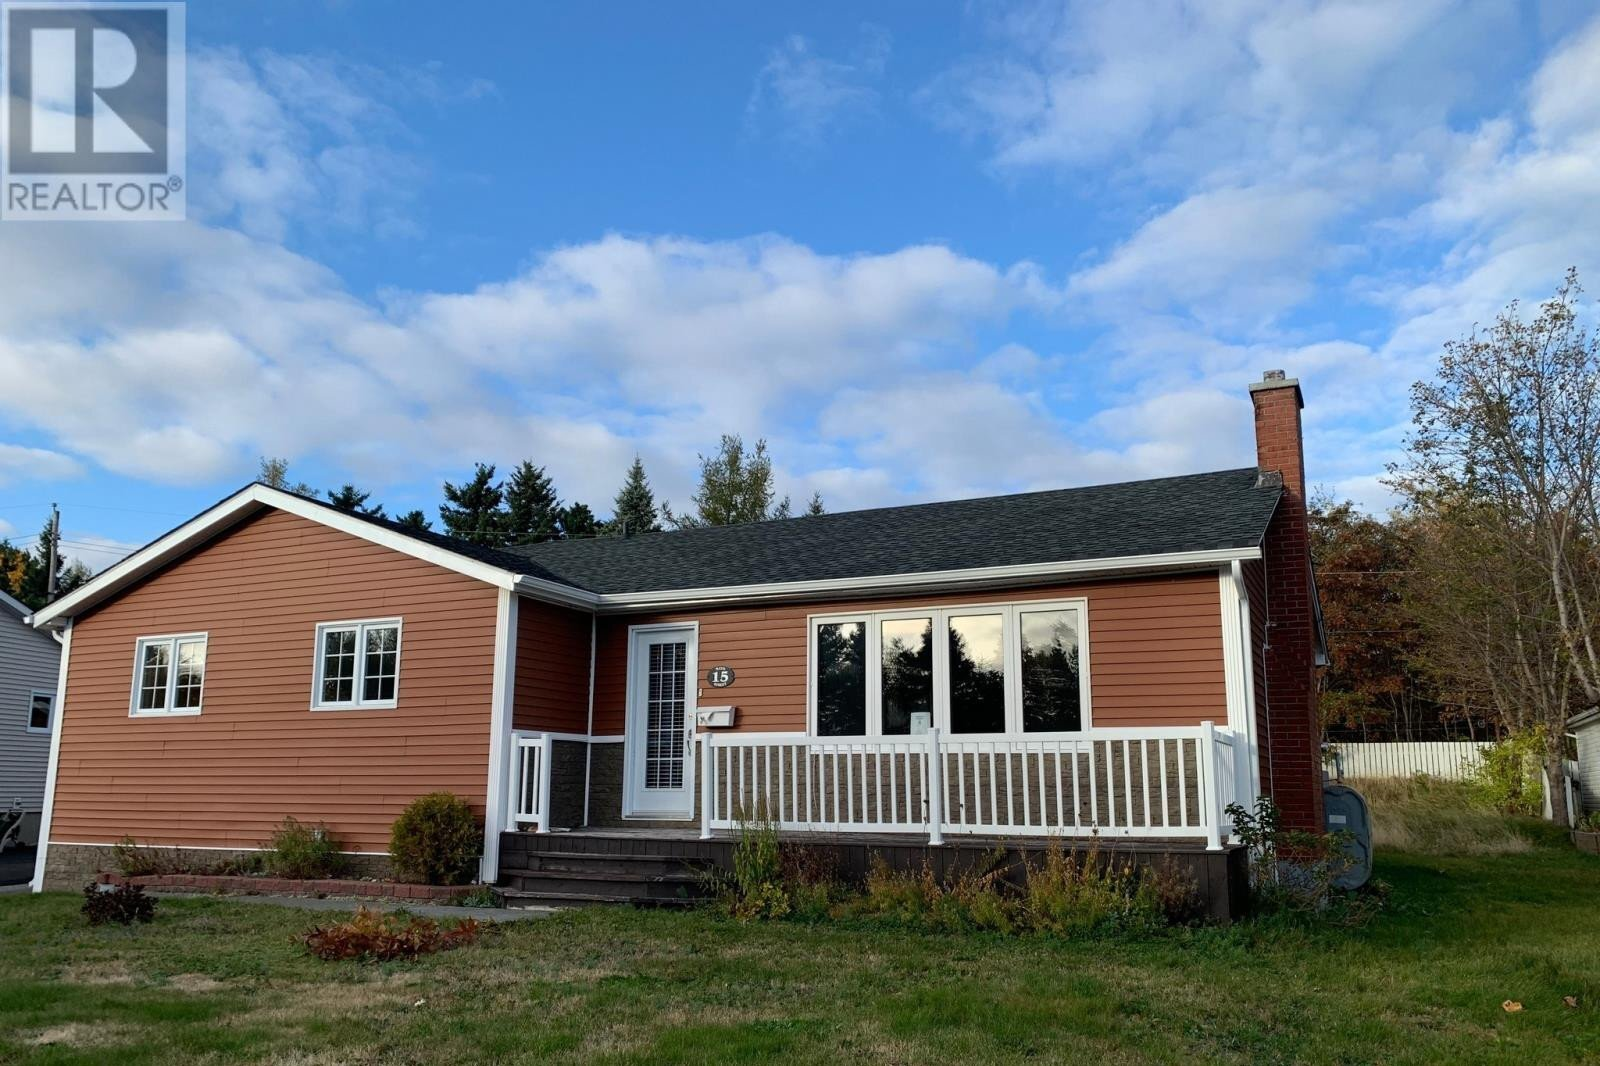 House for sale at 15 Mayo St Grand Falls-windsor Newfoundland - MLS: 1222812